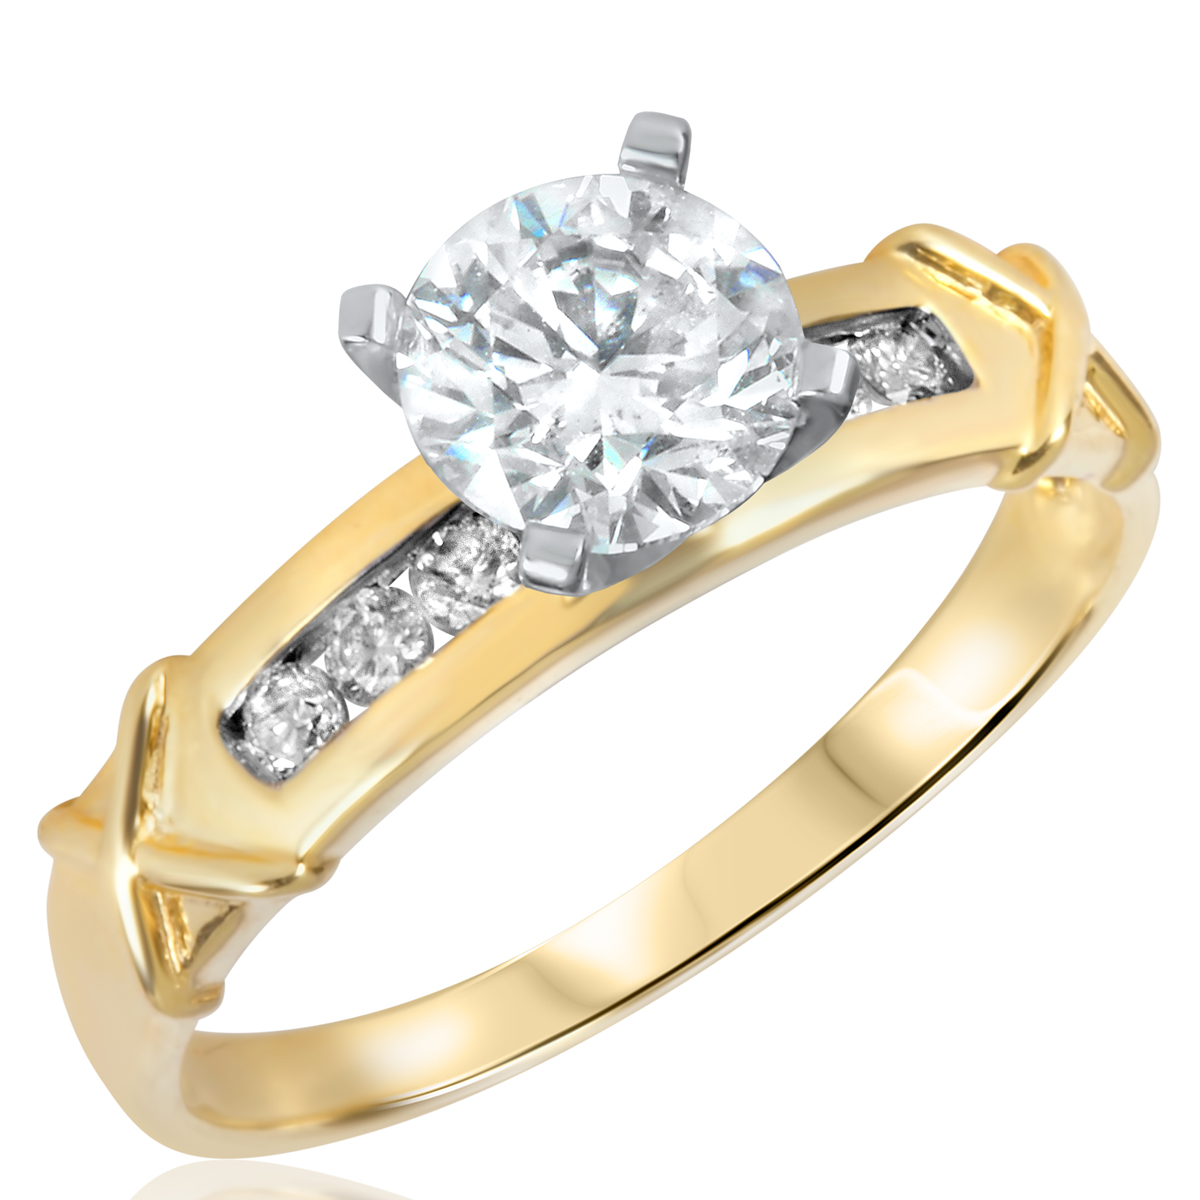 1 1/6 CT. T.W. Diamond Ladies Engagement Ring 14K Yellow Gold